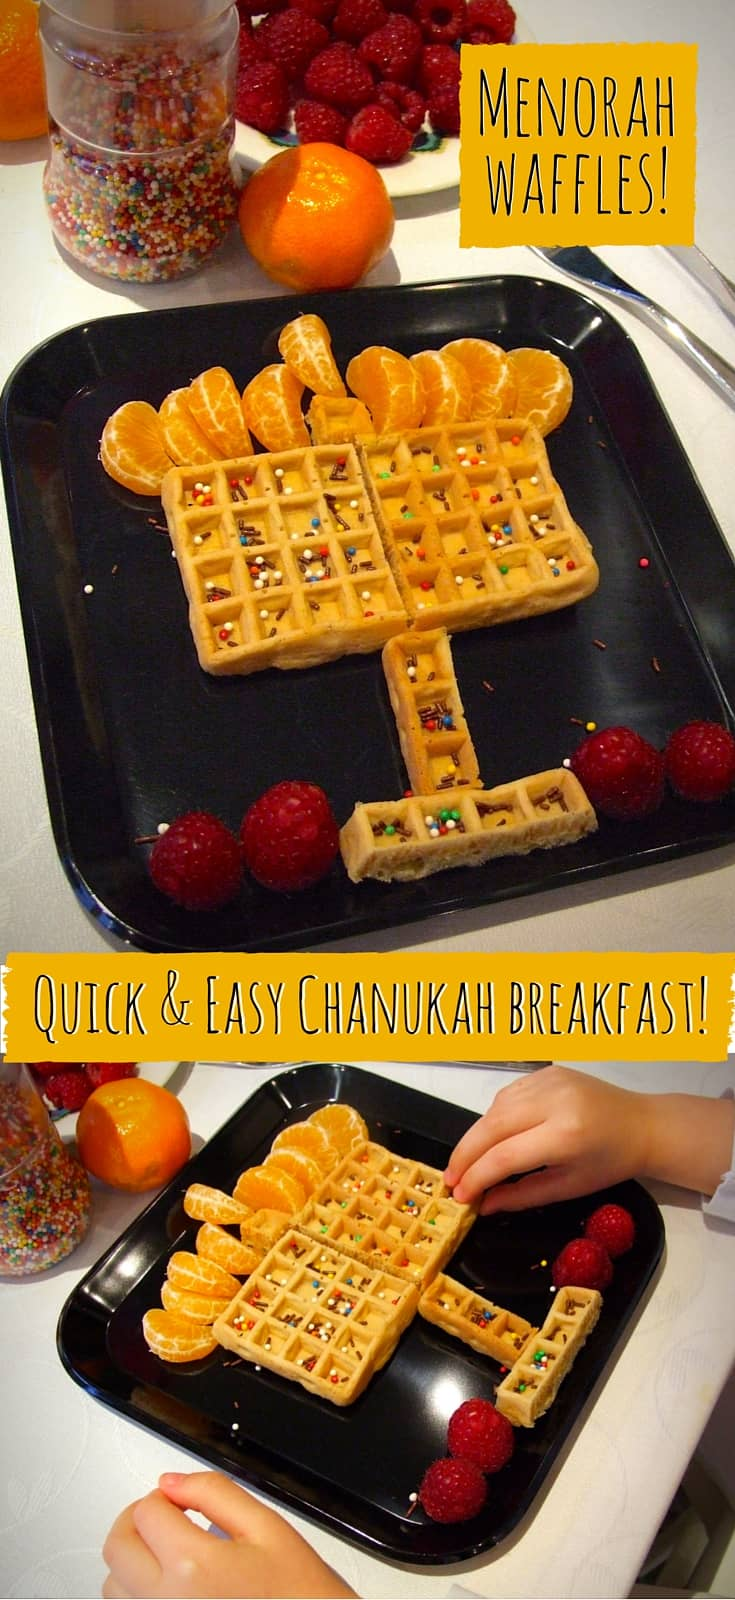 This special Chanukah breakfast comes together from ready-made items in under a minute! Decorated with fruit & sprinkles, your kids will love it!